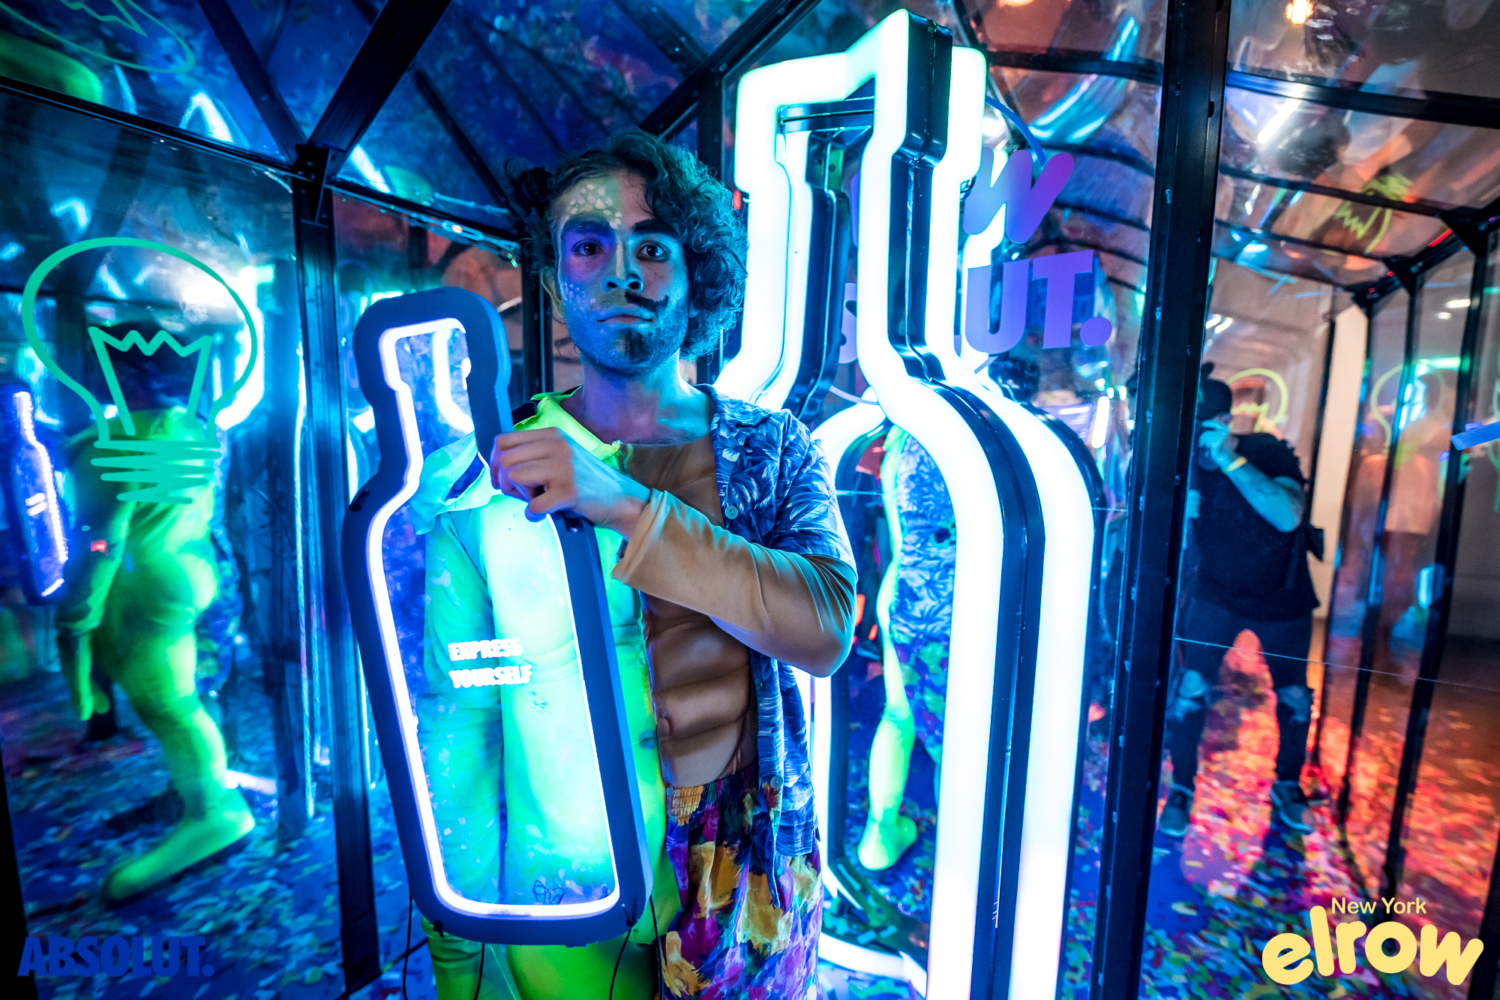 Making magic happen at Elrow Open Air – photos by aLIVE coverageELROW2018 0728 220143 9480 ALIVECOVERAGE